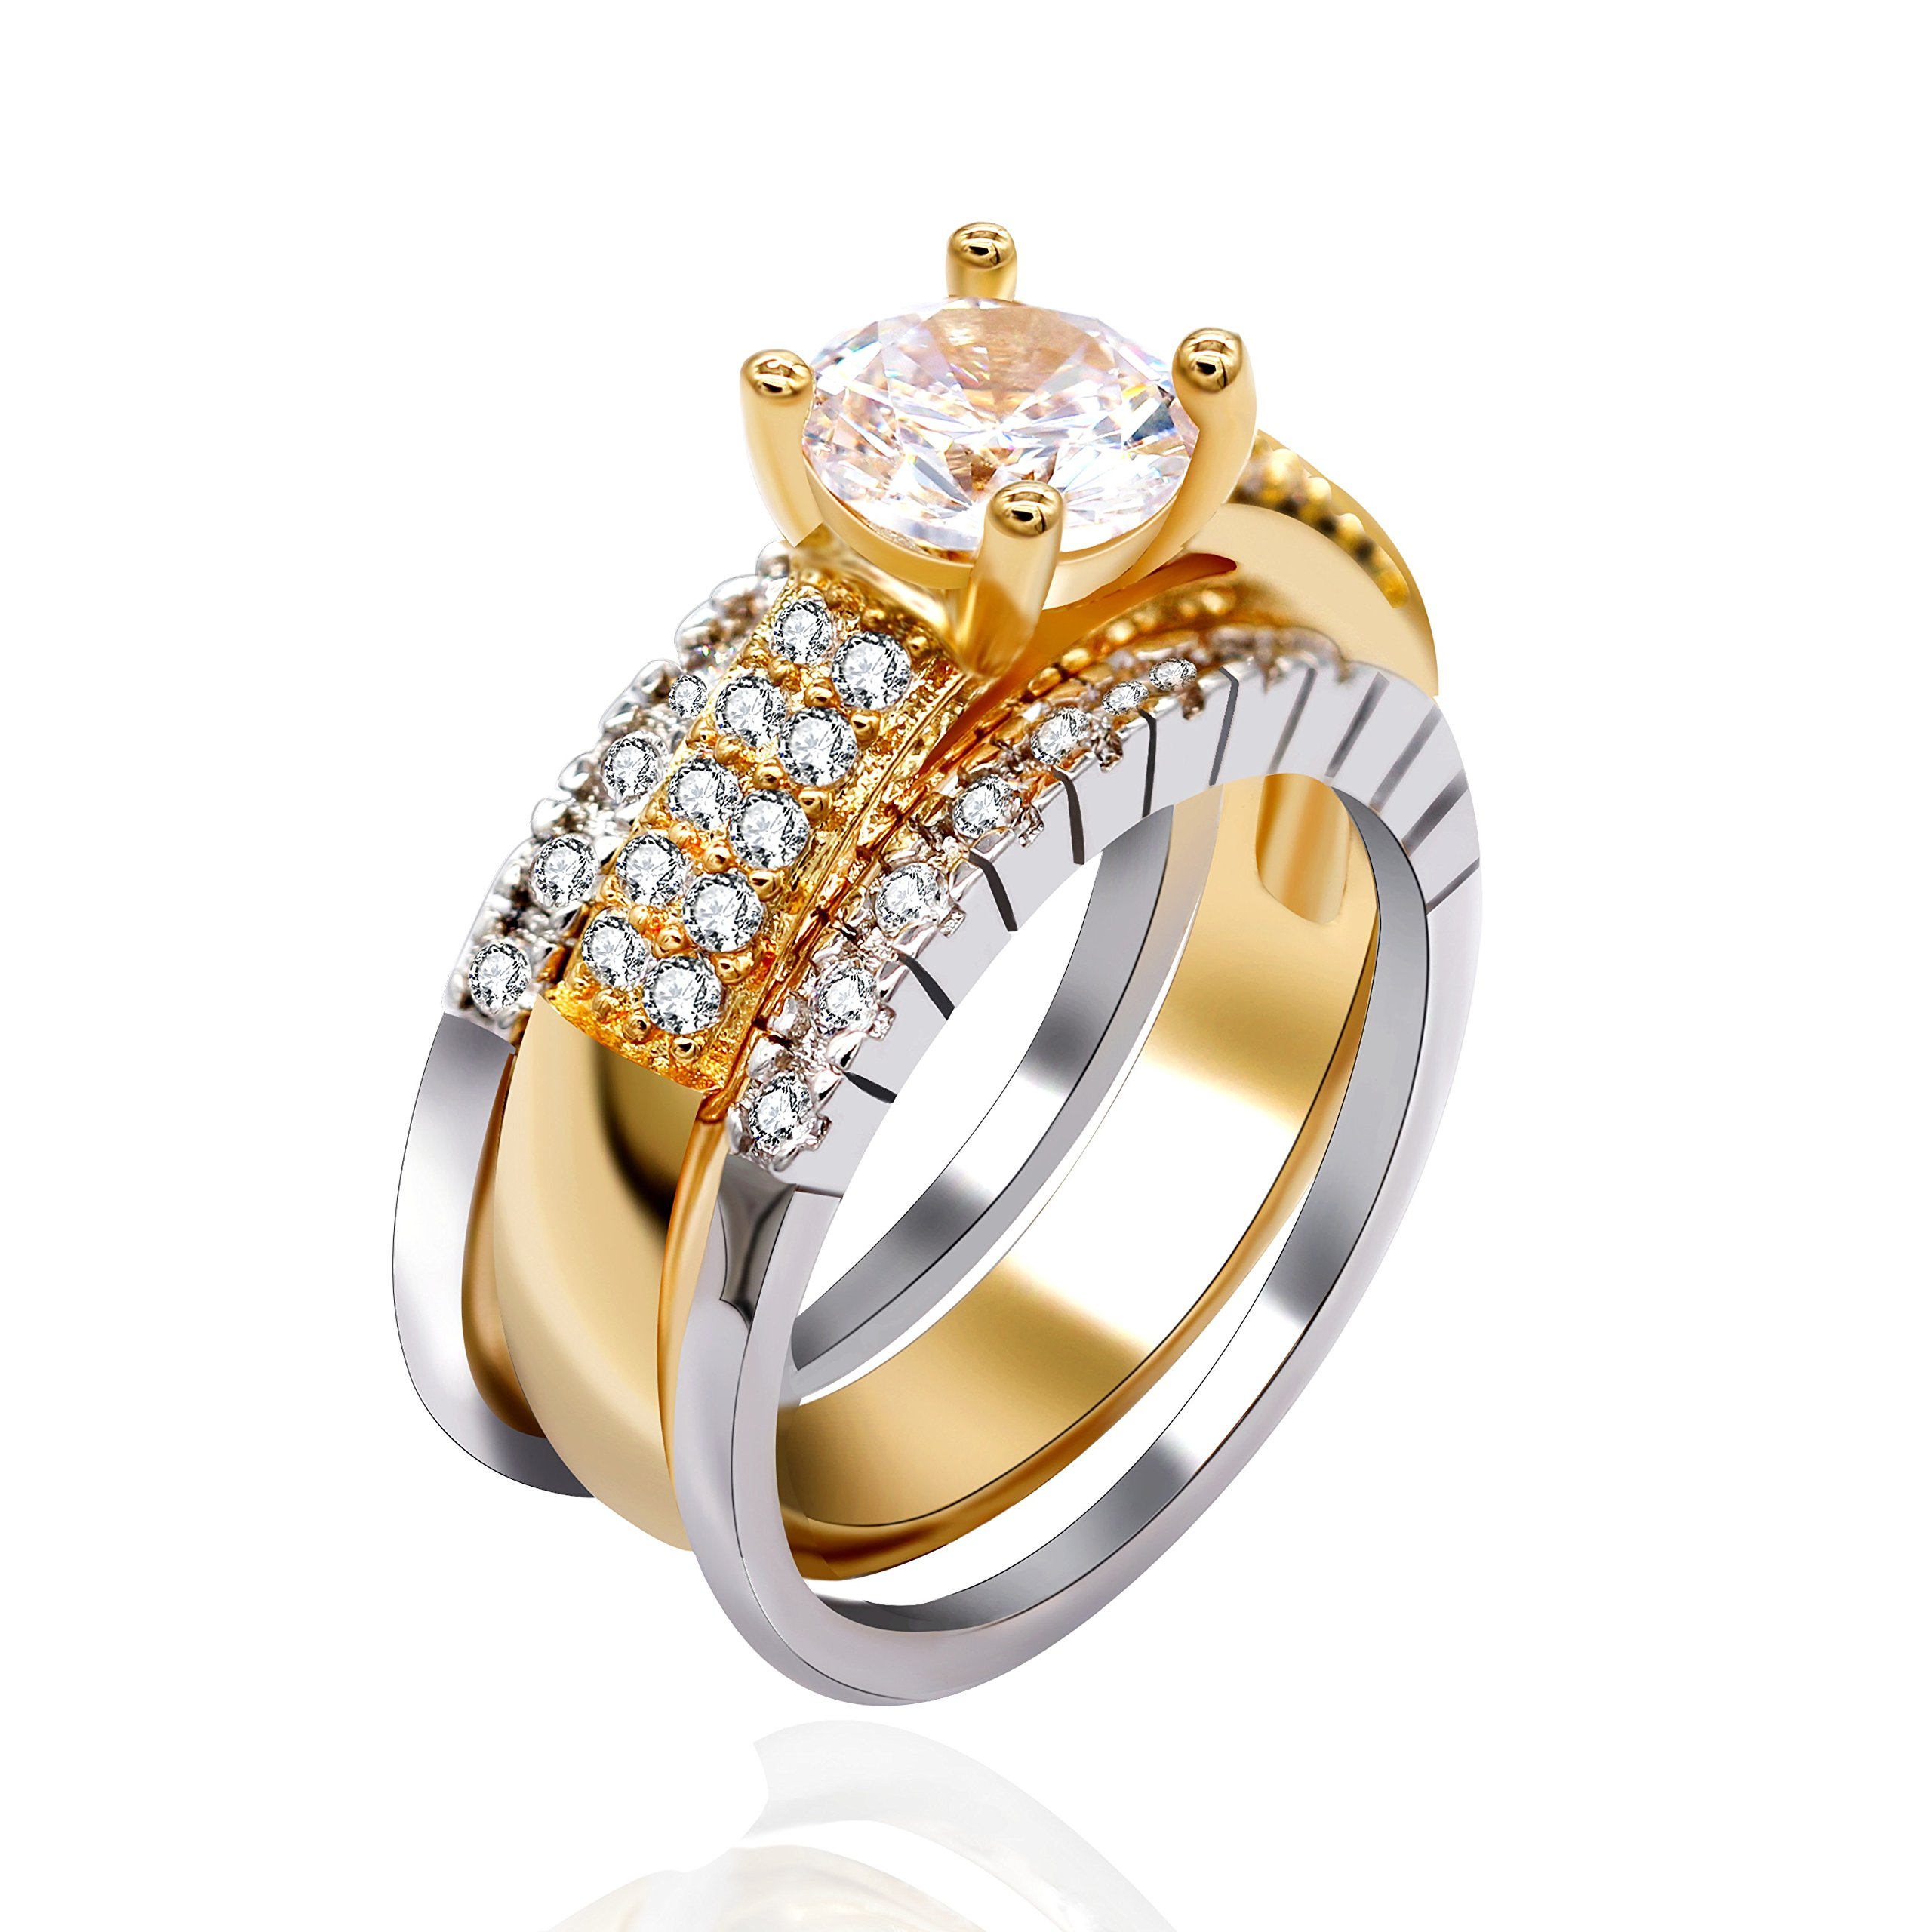 Uloveido Lady Rings Pack of 3 pcs Halo Big Stone AAA Cubic Zirconia Gold Plated 2 Tones Party Solitaire Jewelry Mother 's Day Gift (Gold Color, Size 5) Y421